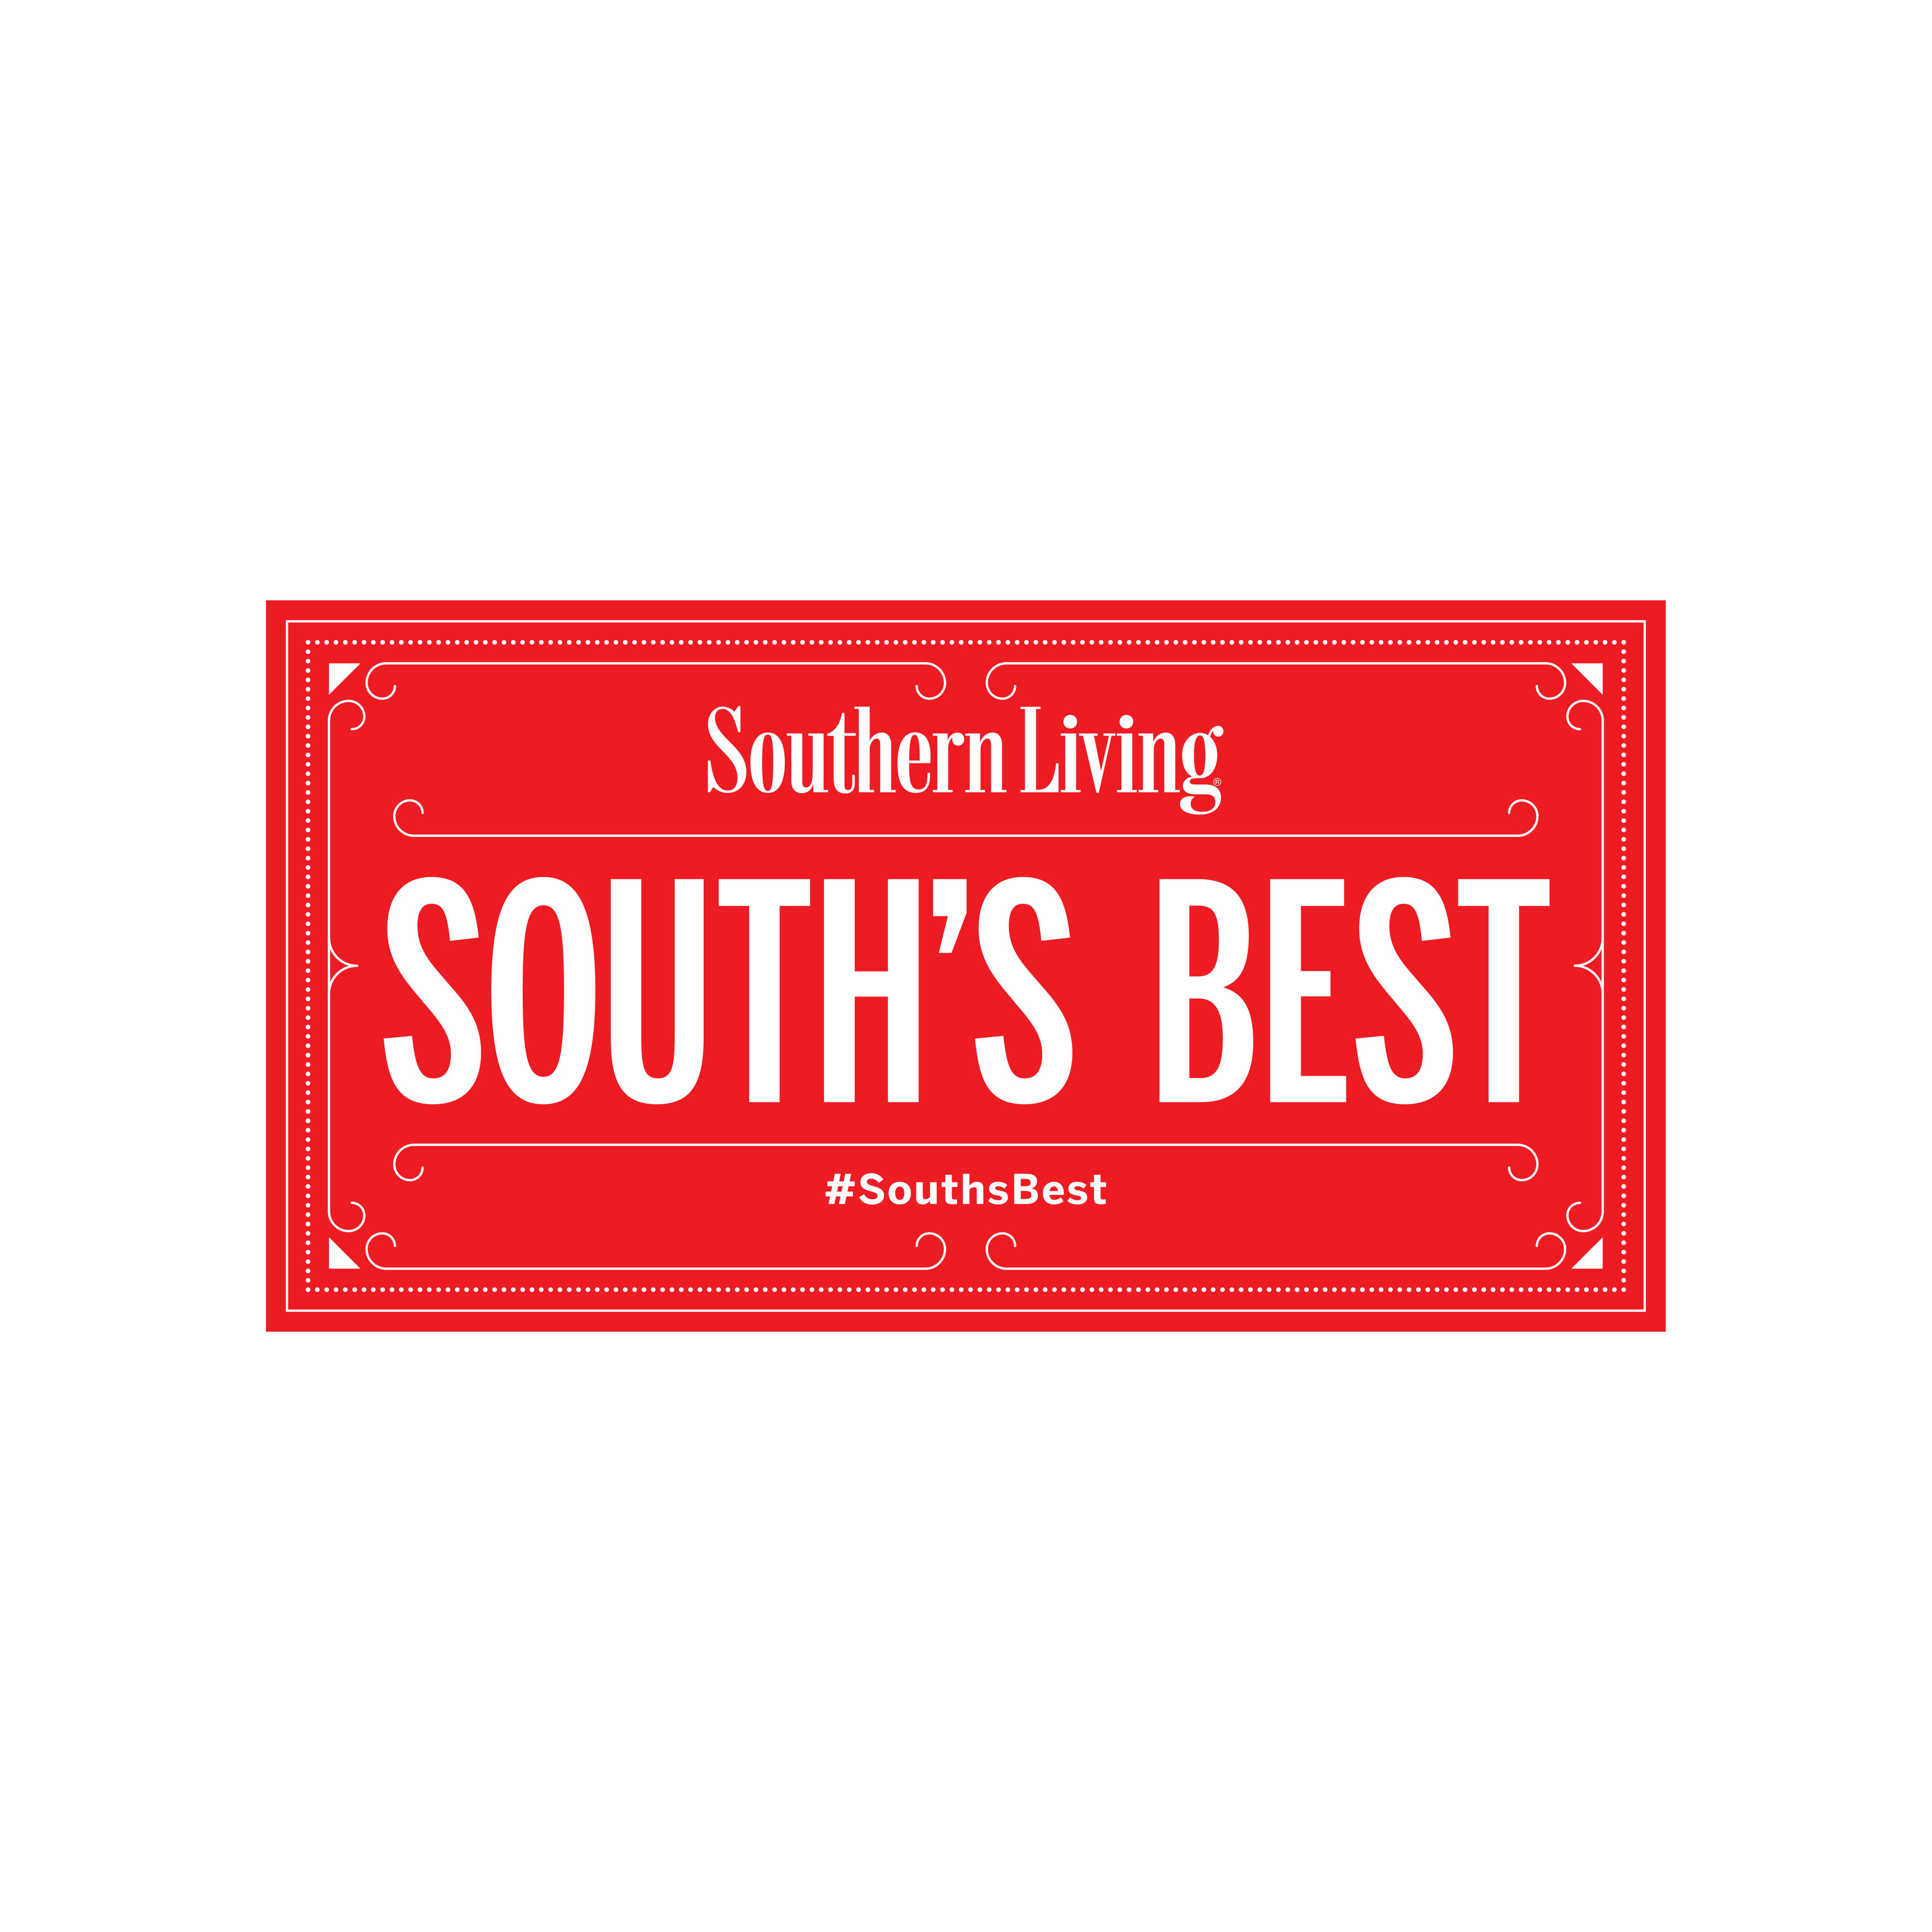 Here's How We Conducted the South's Best Survey